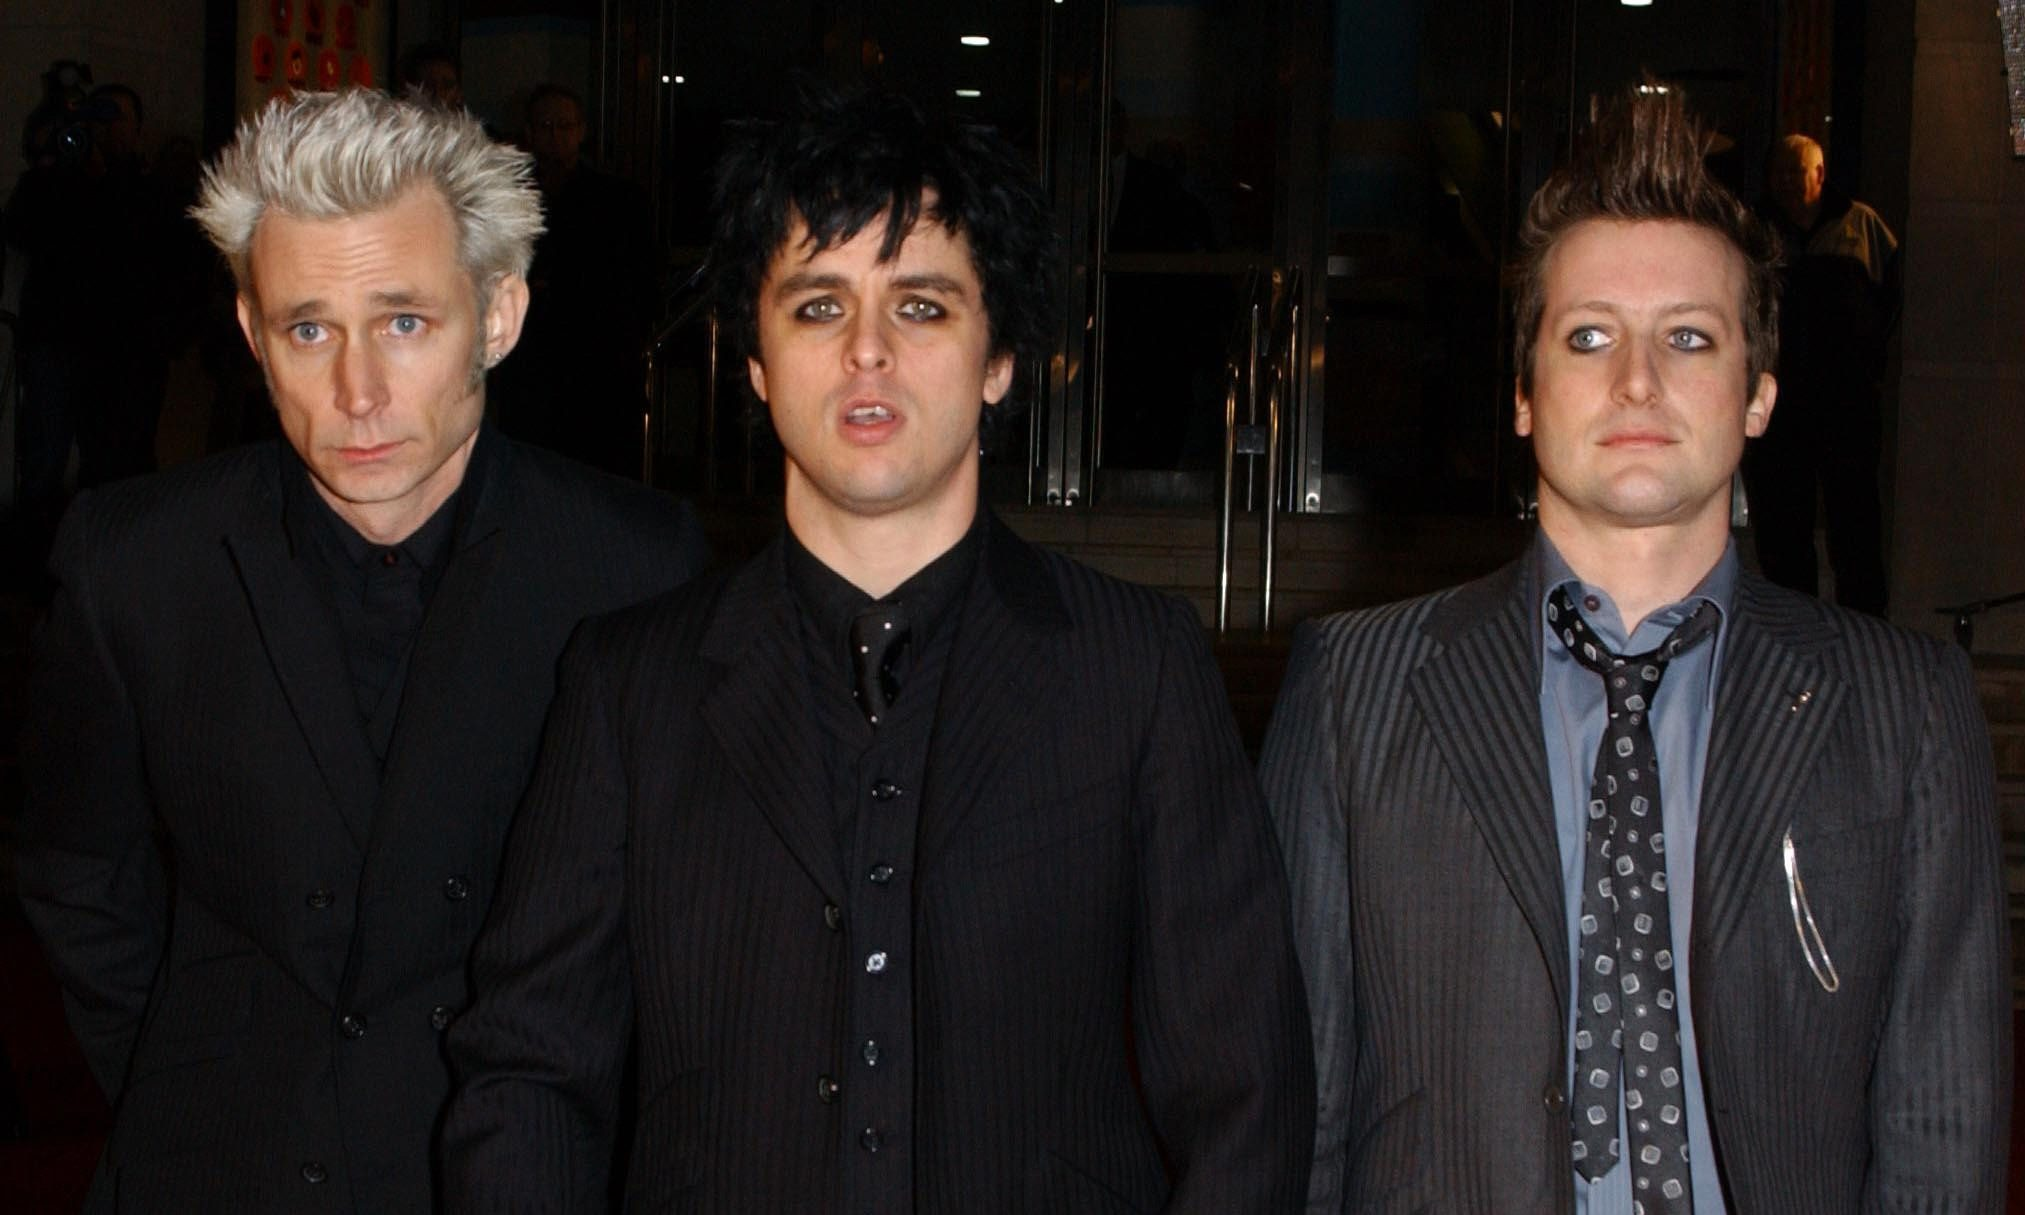 American band Green Day.